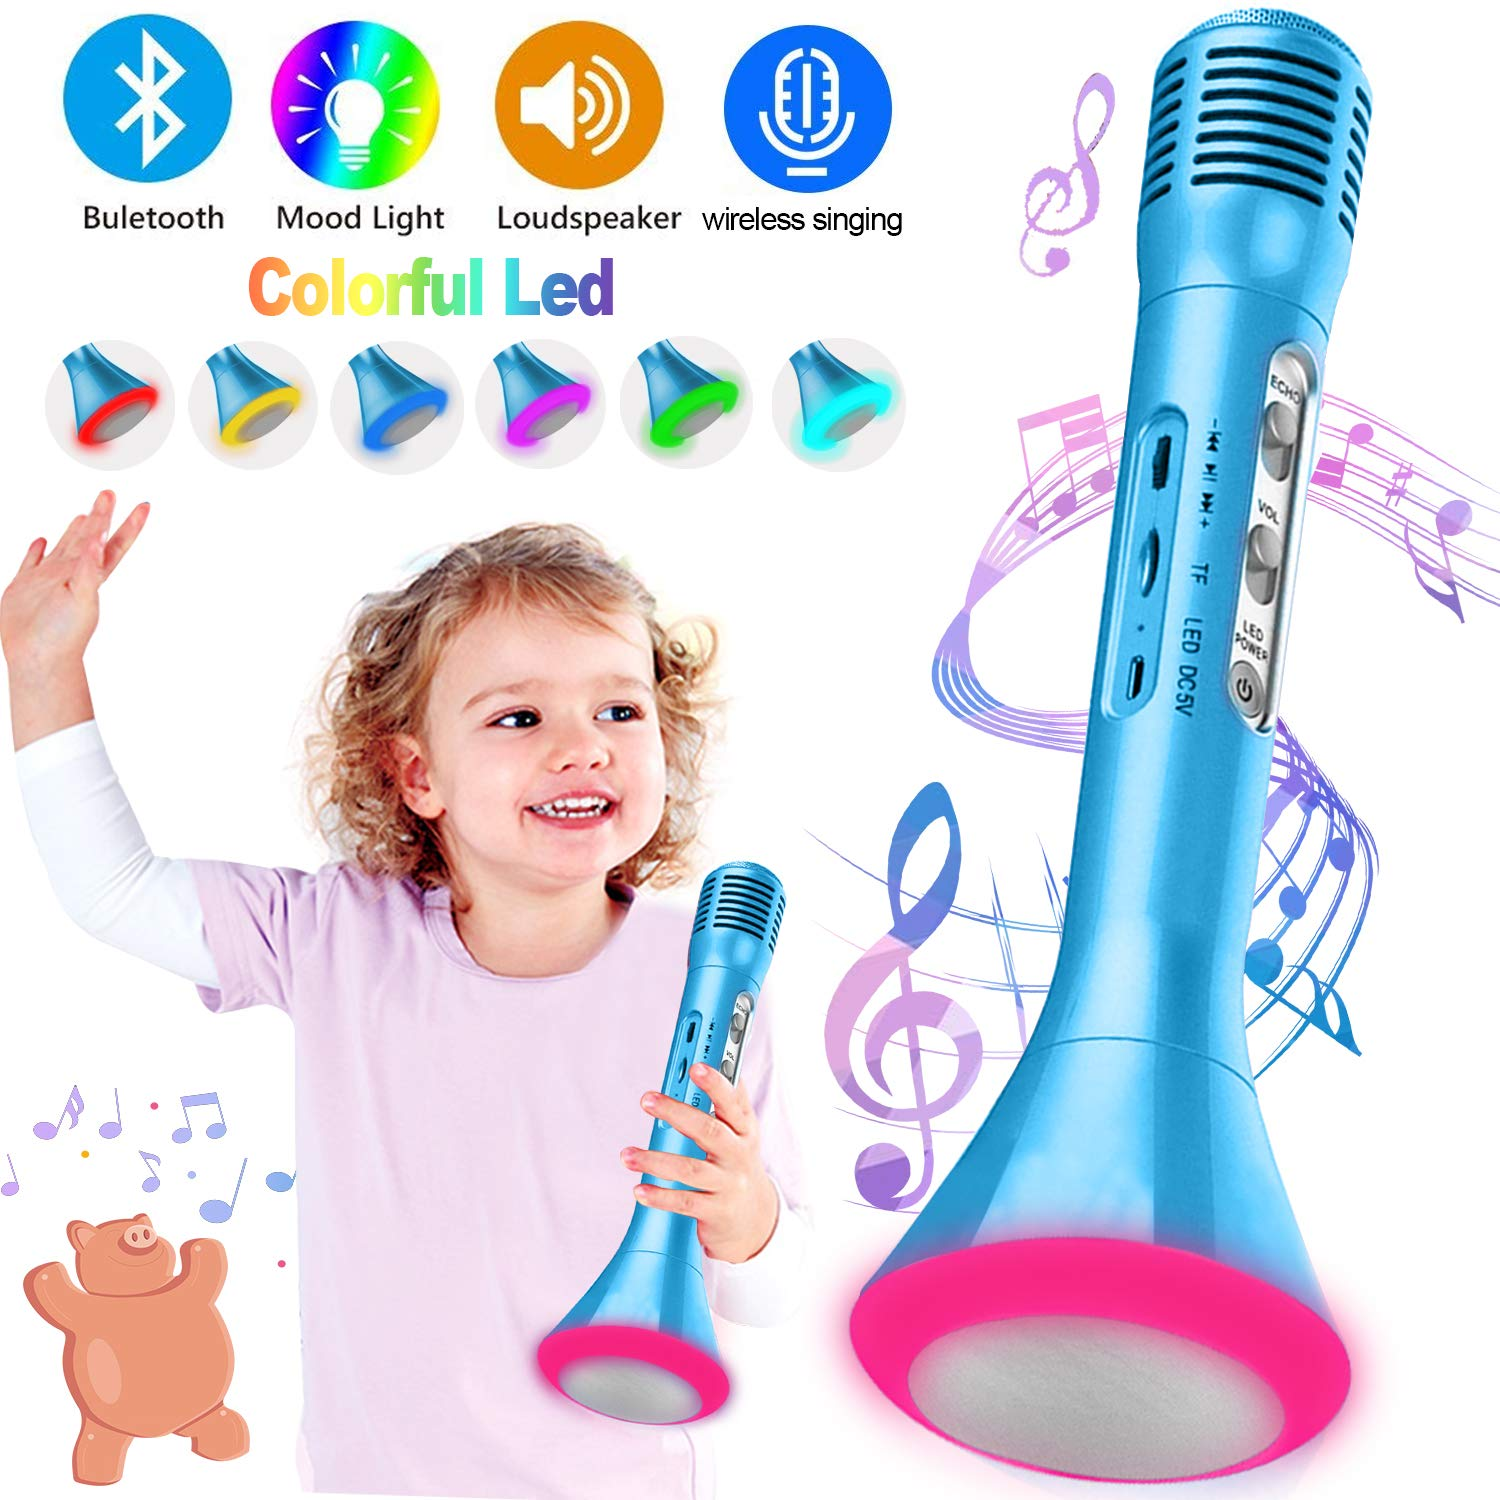 Kids Karaoke Machine Wireless Singing Microphone with Bluetooth Speaker Colorful LED Lights Handheld Portable Music Playing Toys  for Girls Boys Home Party KTV Xmas Birthday Gifts Andriod iOS PC iPad by Santery (Image #1)